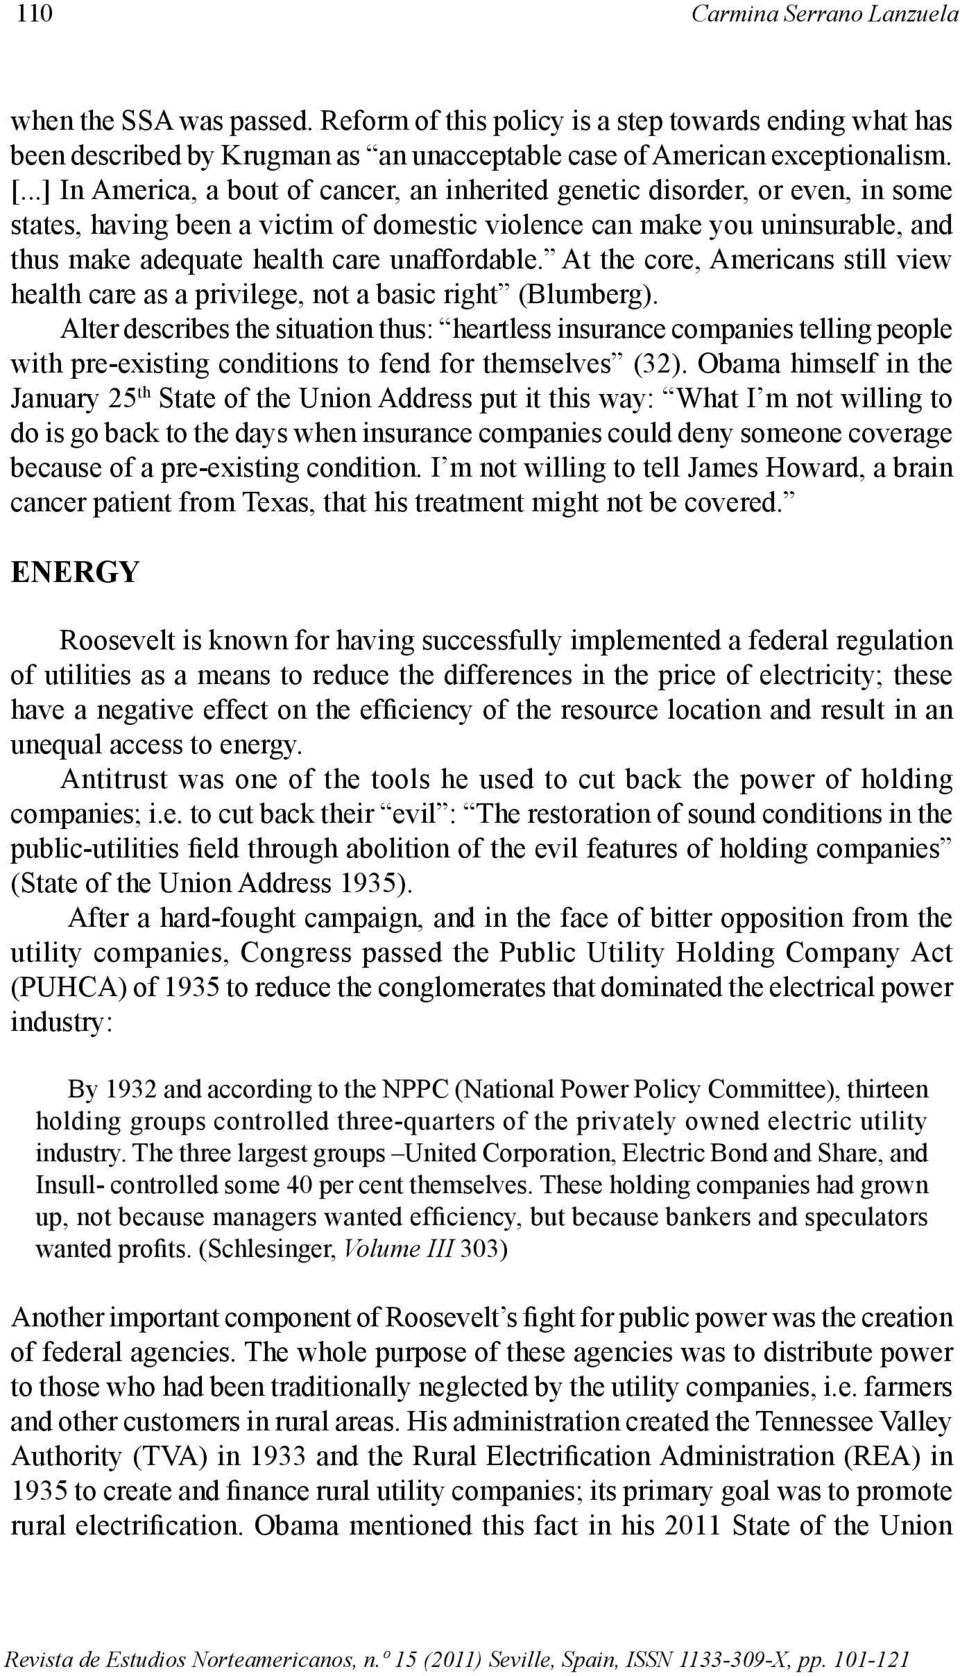 unaffordable. At the core, Americans still view health care as a privilege, not a basic right (Blumberg).